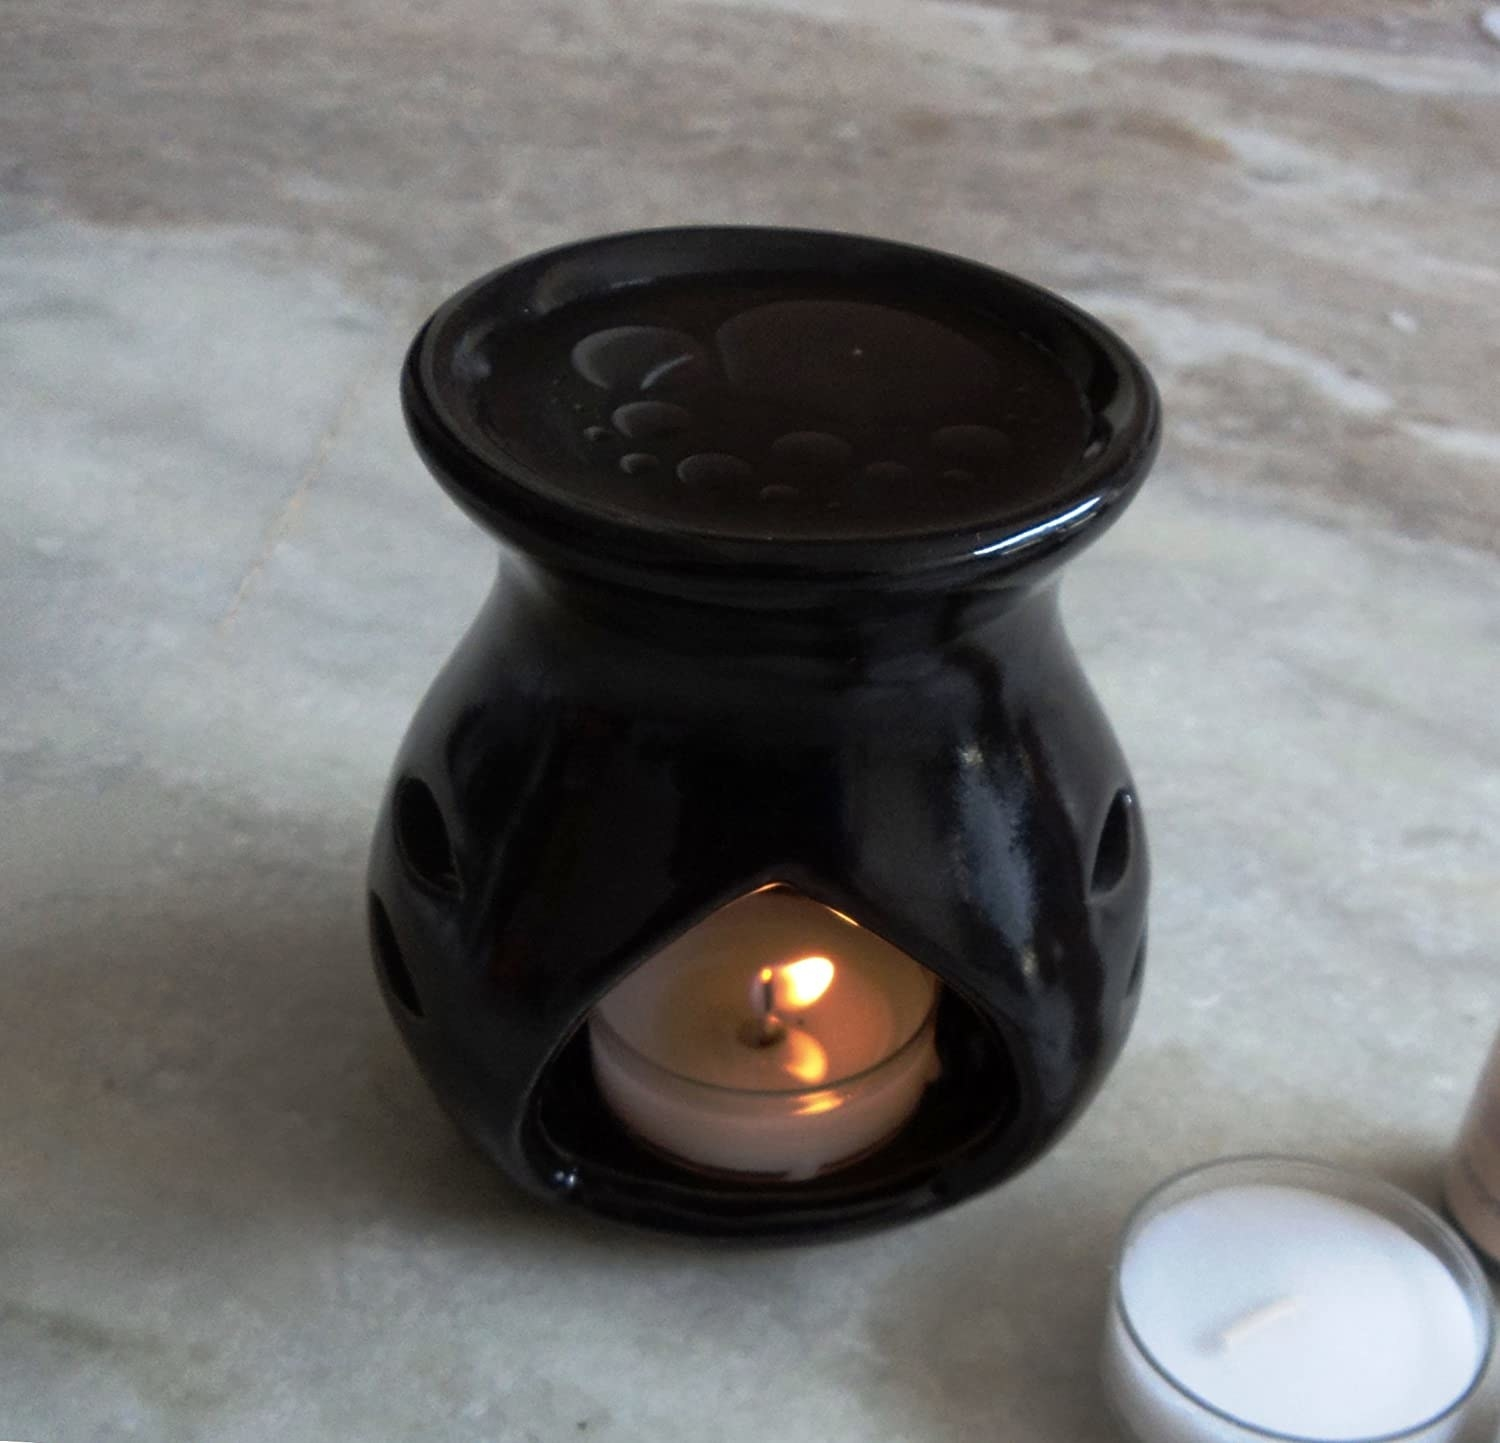 An aroma diffuser